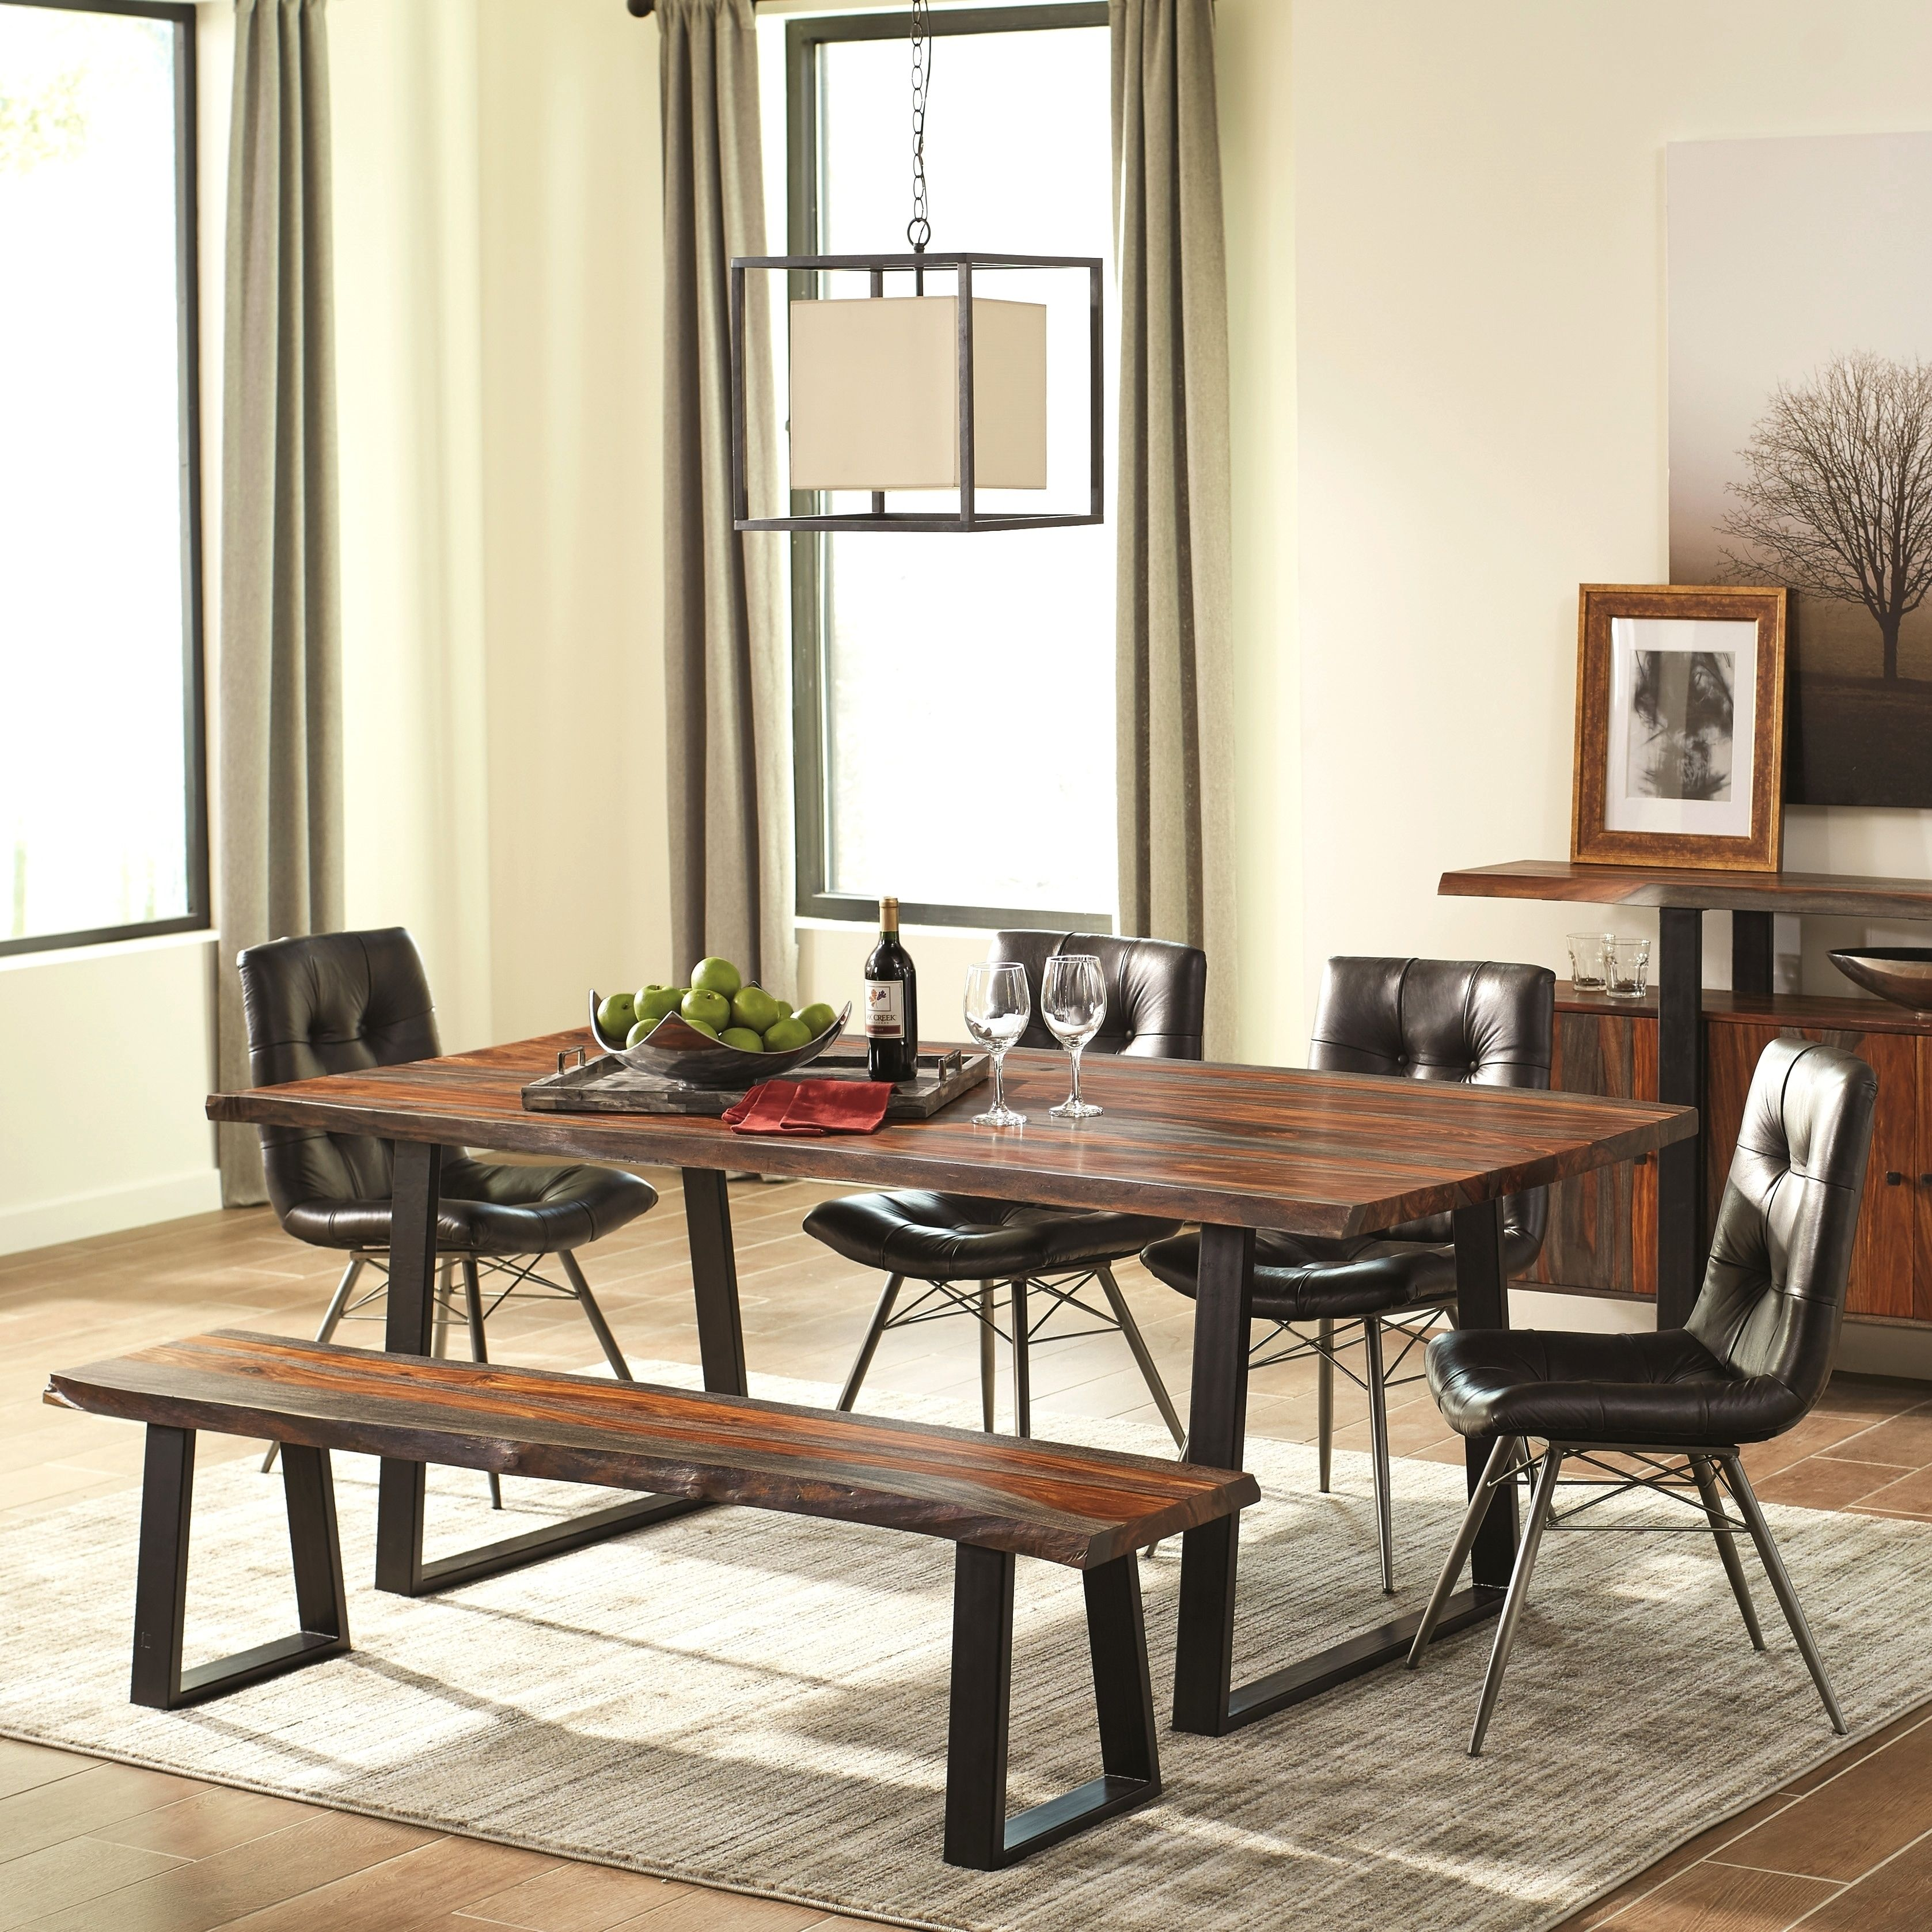 Modern Artistic Designed Dining Set with Danish Style Button Tufted